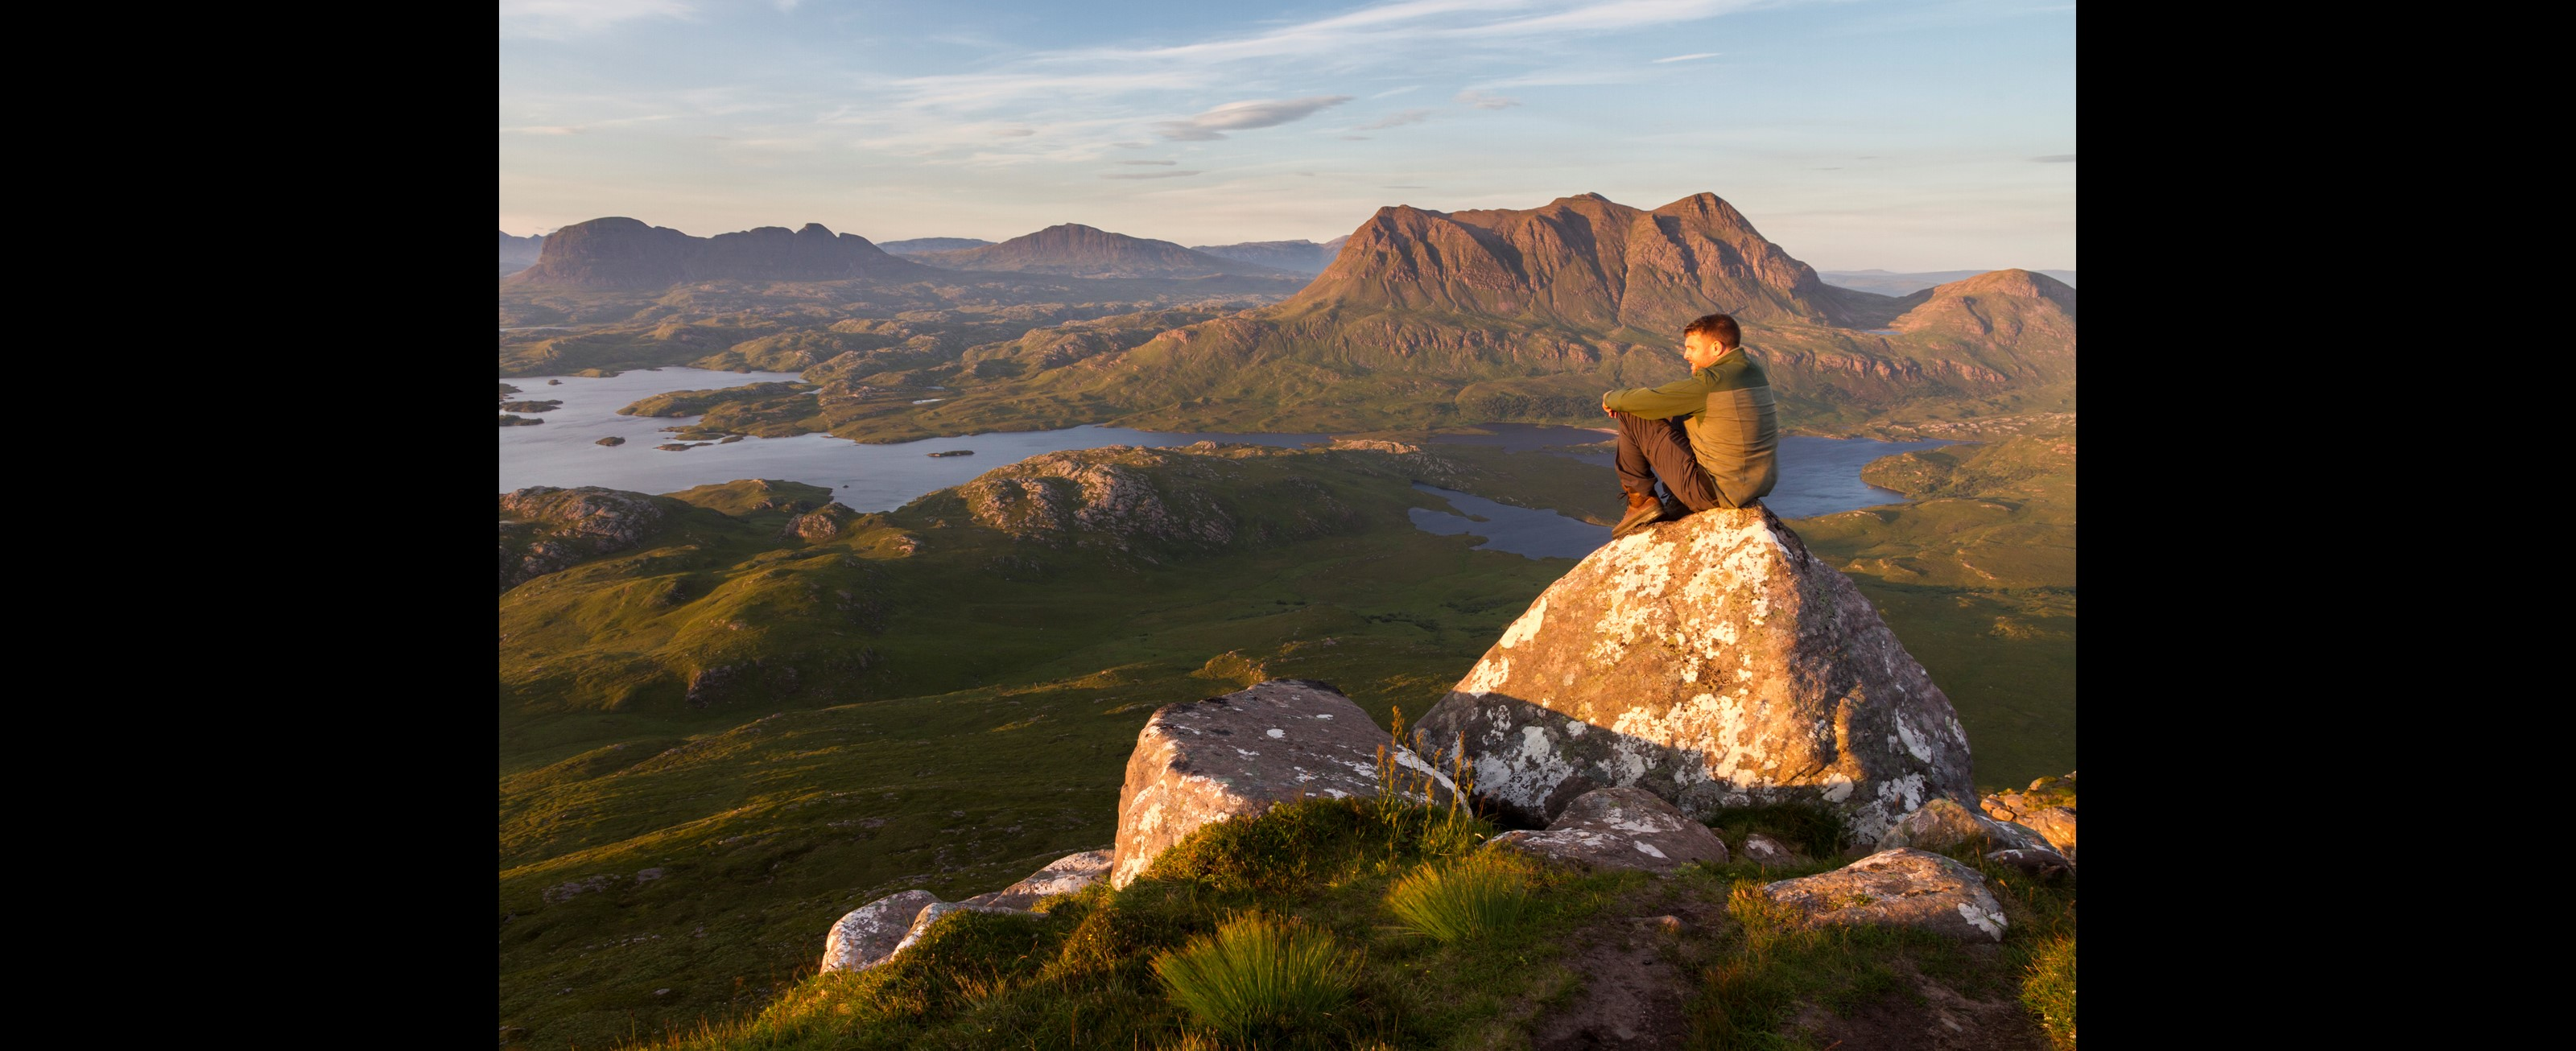 <h1>INSPIRATIONAL RETREATS THAT SUPPORT WILD NATURE</h1>